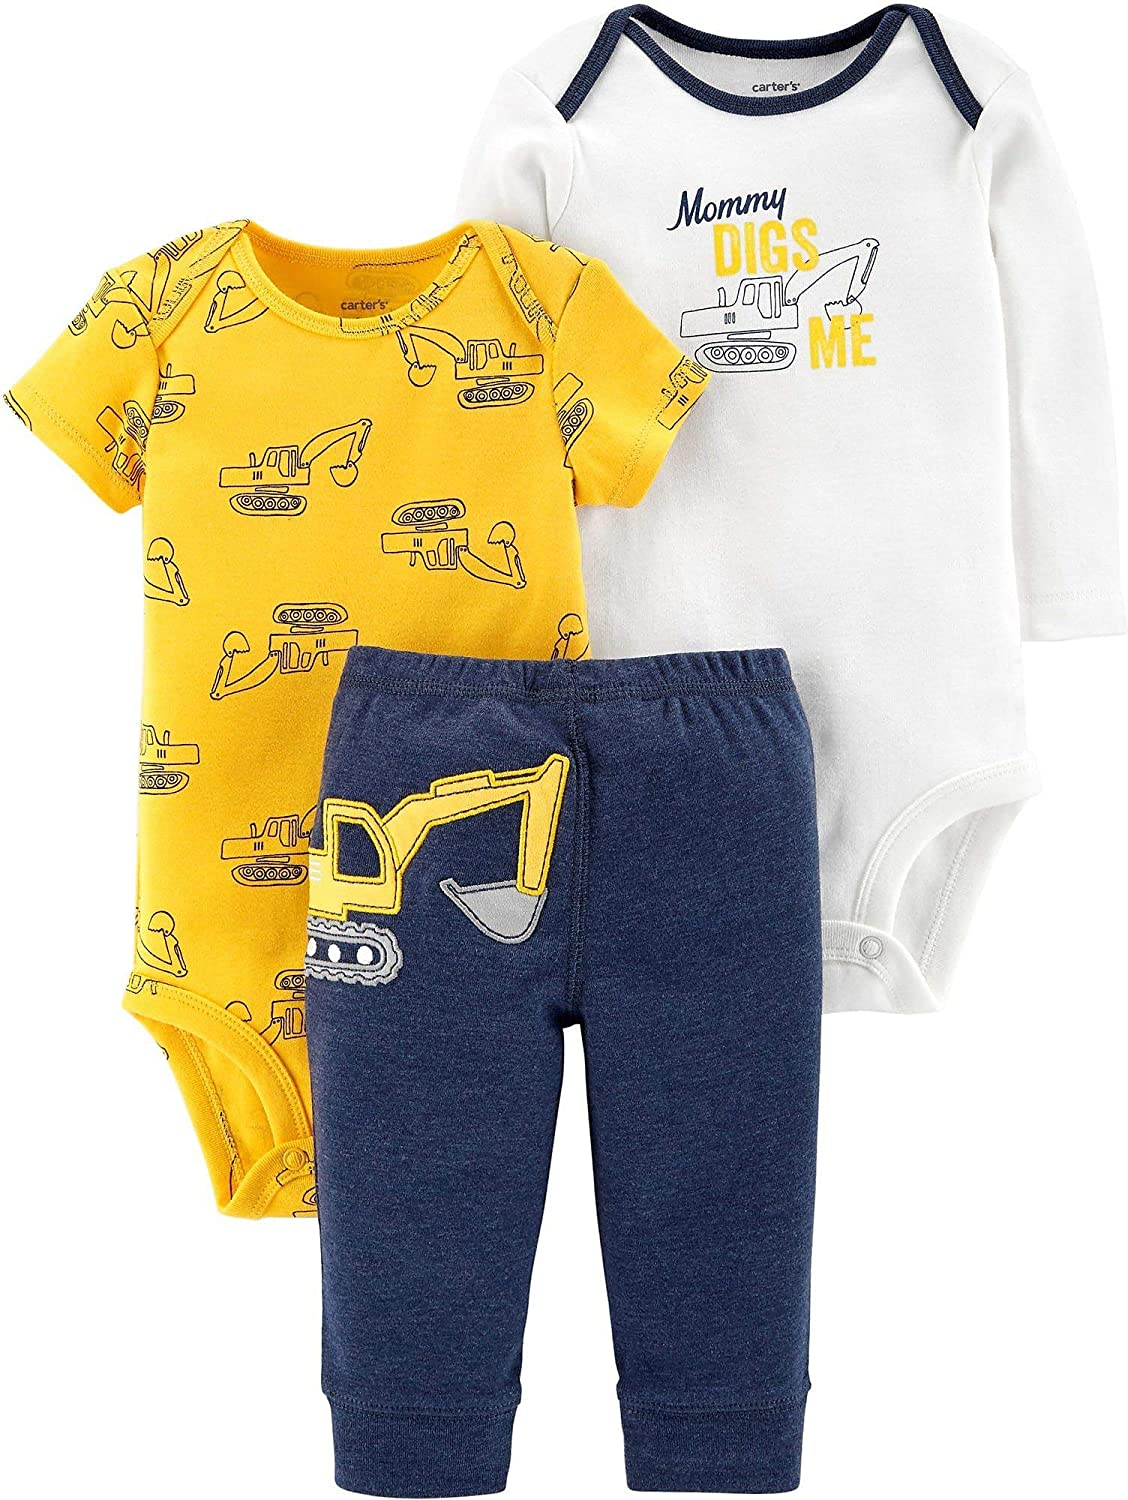 Carter's Baby Boys' 3-Piece Little Character Set (Yellow/Navy Construction, 6 Months)